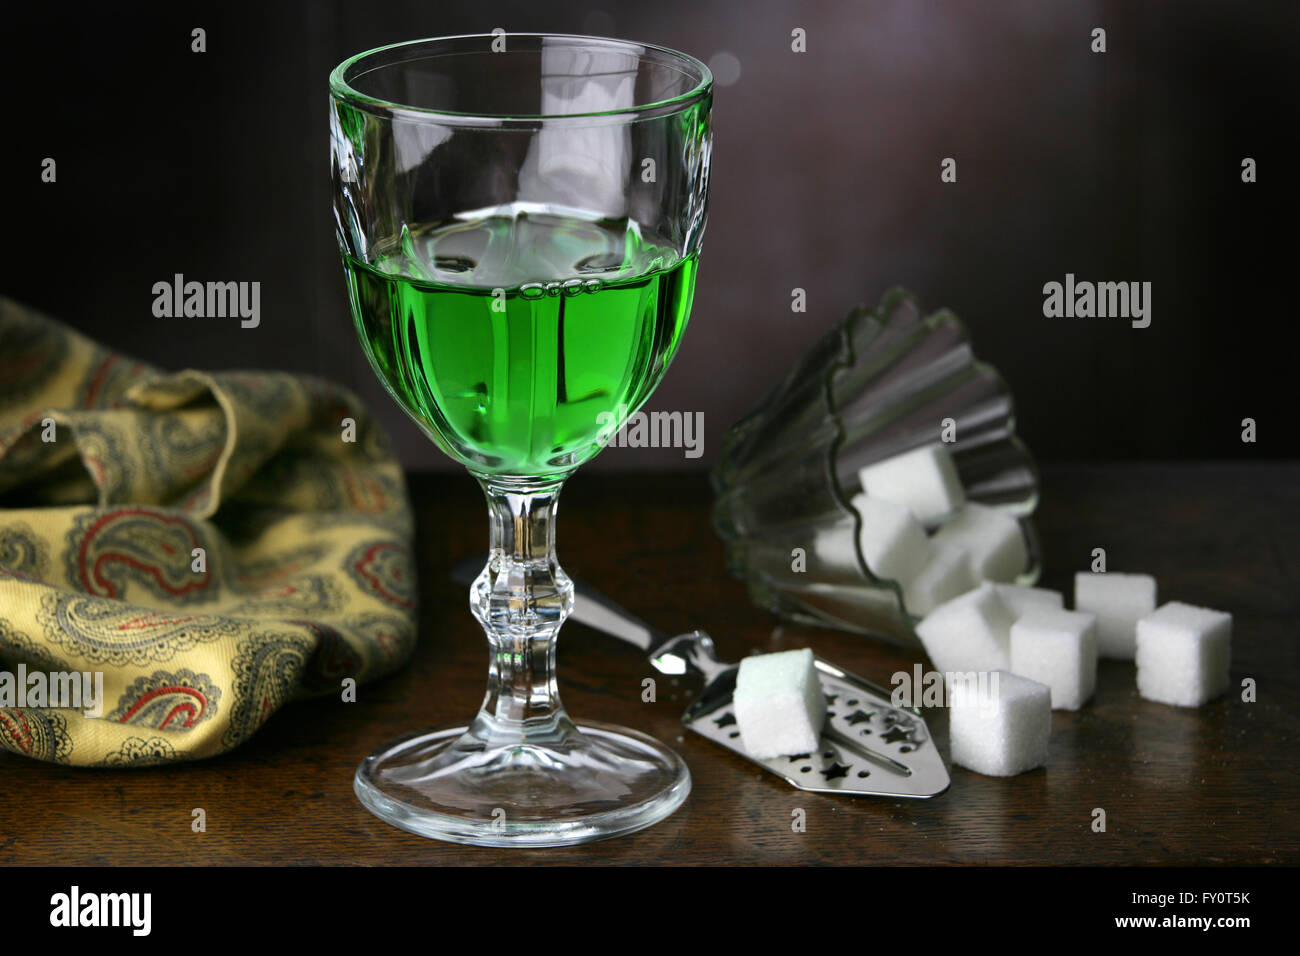 Glass of Absinthe with Absinthe Spoon and sugar. - Stock Image